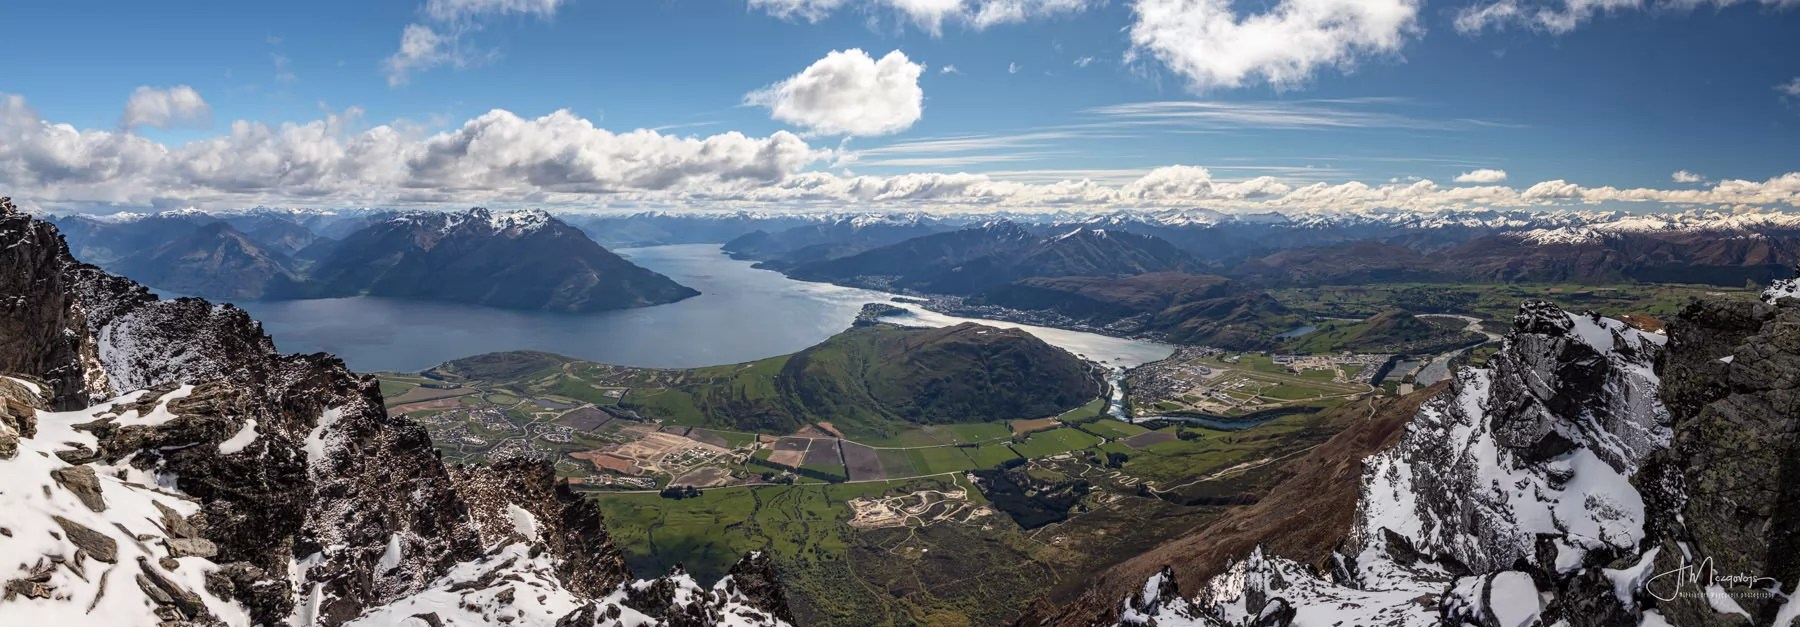 View of Queenstown from the Remarkables viewpoint, New Zealand